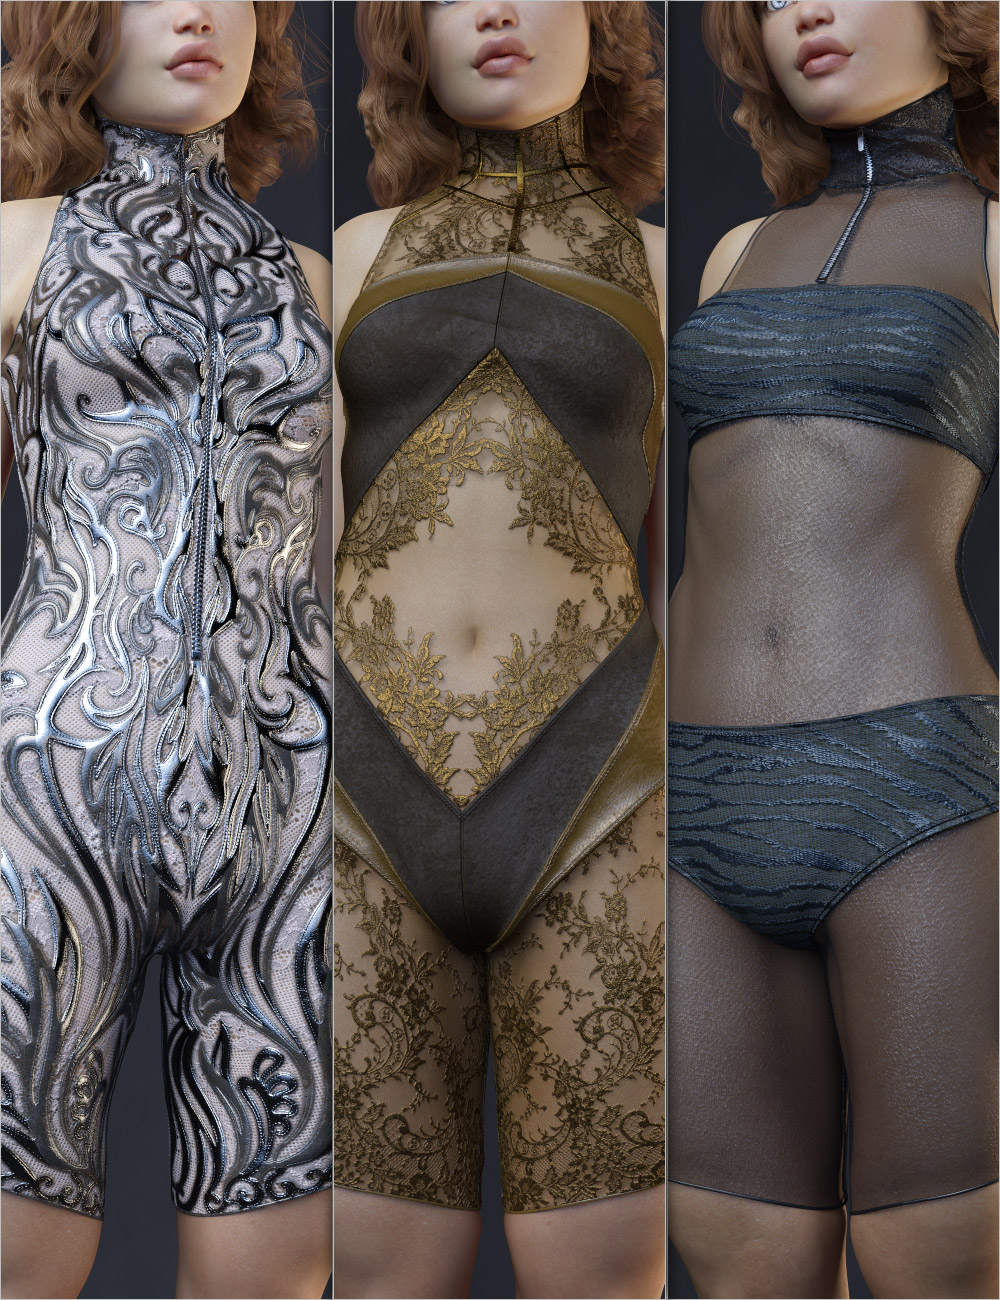 Helix Charm Outfit for Genesis 8 Female(s) by: Aeon Soul, 3D Models by Daz 3D